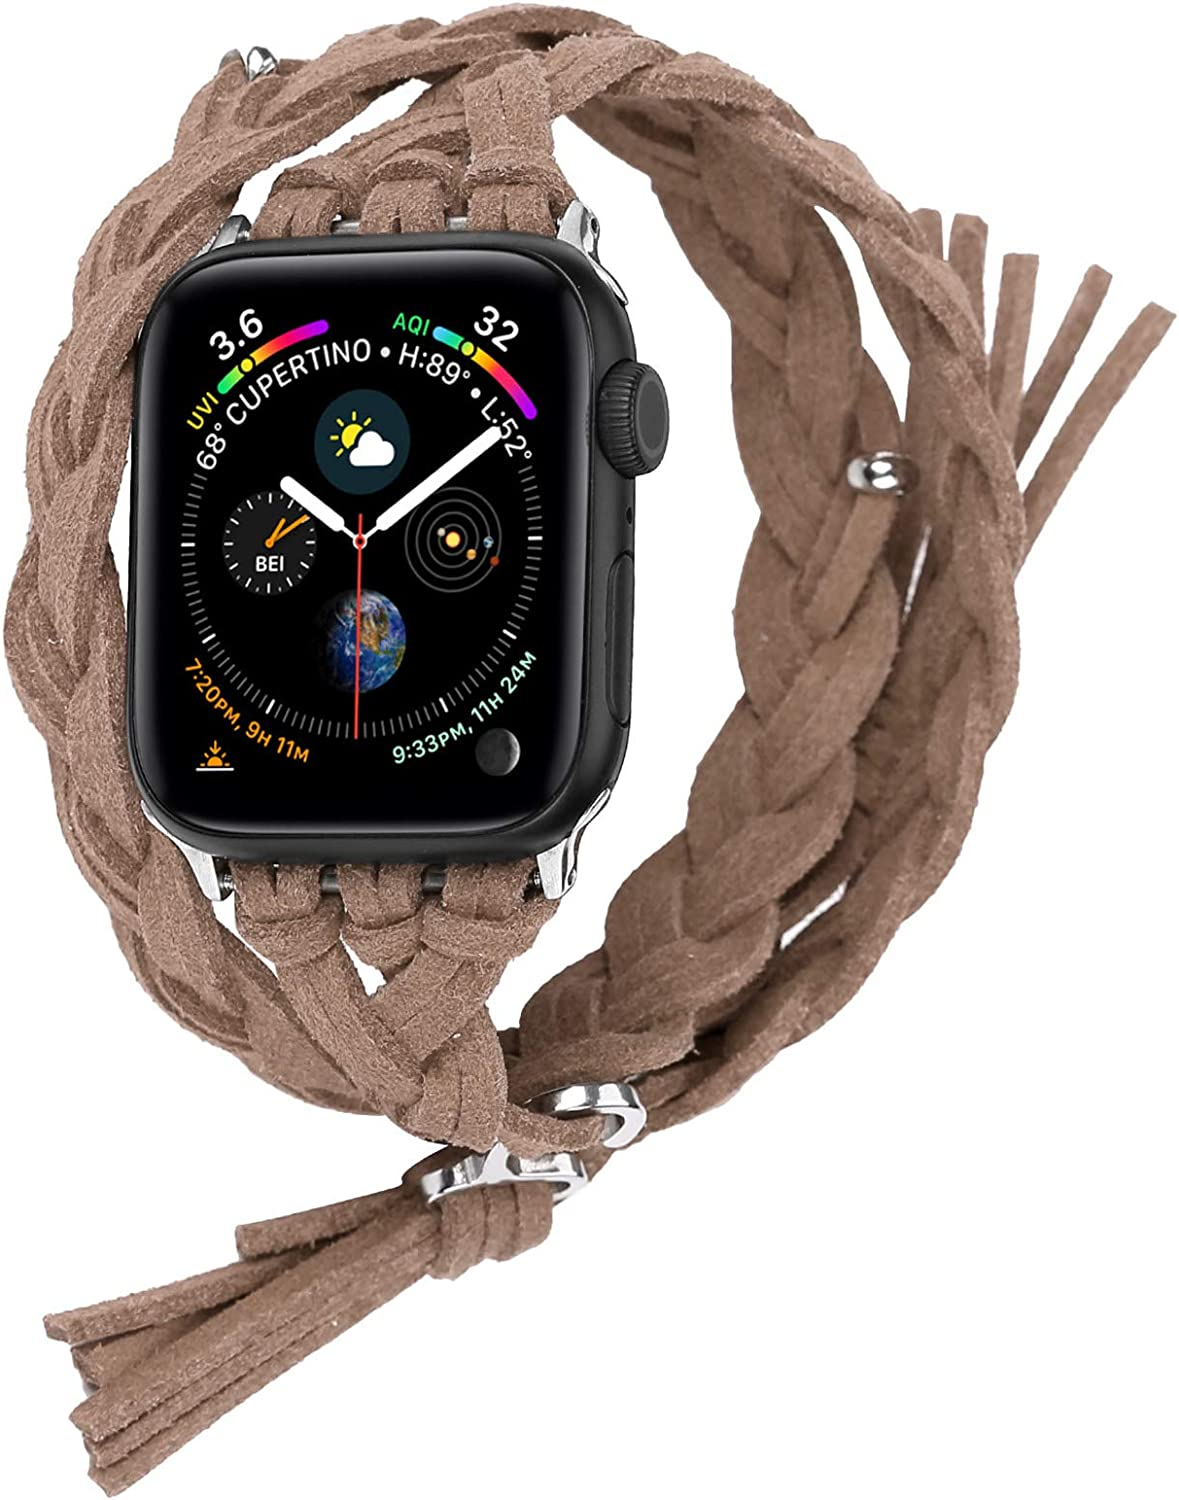 Compatible with Apple Watch Band 38mm 42mm 40mm 44mm, Woven Leather Smart Watch Strap Handmade Double Tour Bracelet Replacement for iWatch Series 5 4 3 2 1 Vintage Band 42mm/44mm, Brown